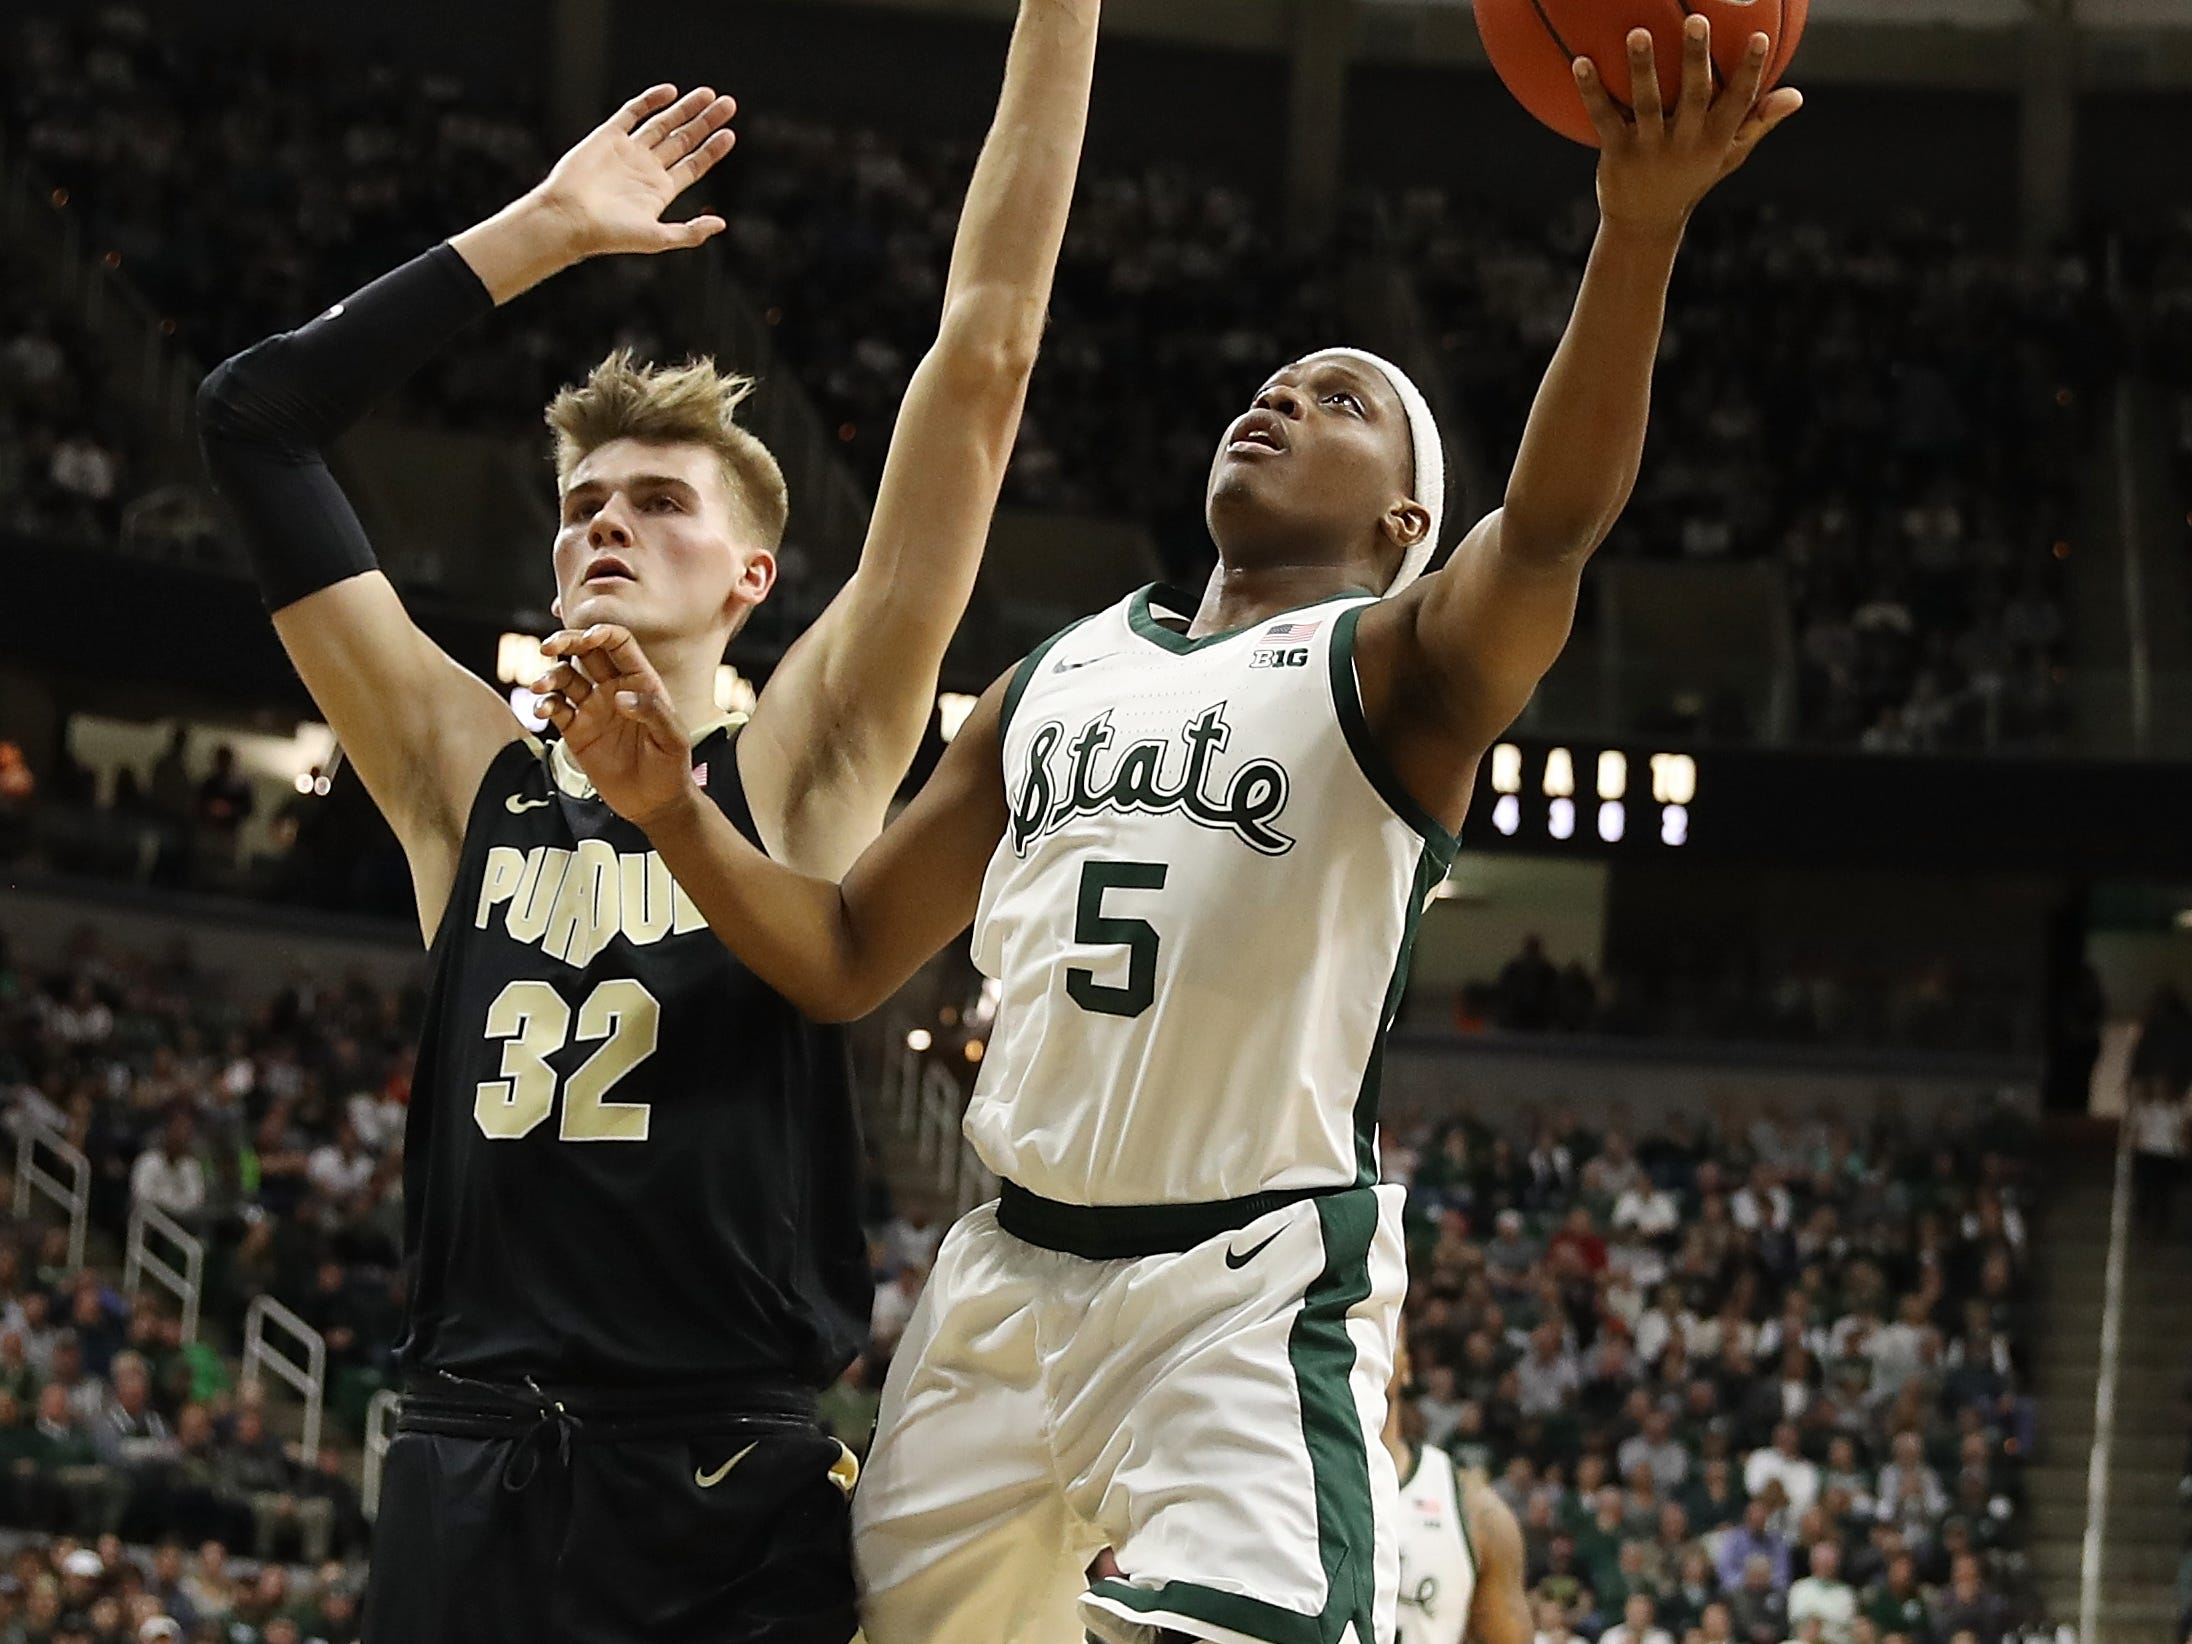 Cassius Winston #5 of the Michigan State Spartans drives to the basket past Matt Haarms #32 of the Purdue Boilermakers during the first half at Breslin Center on January 08, 2019 in East Lansing, Michigan.